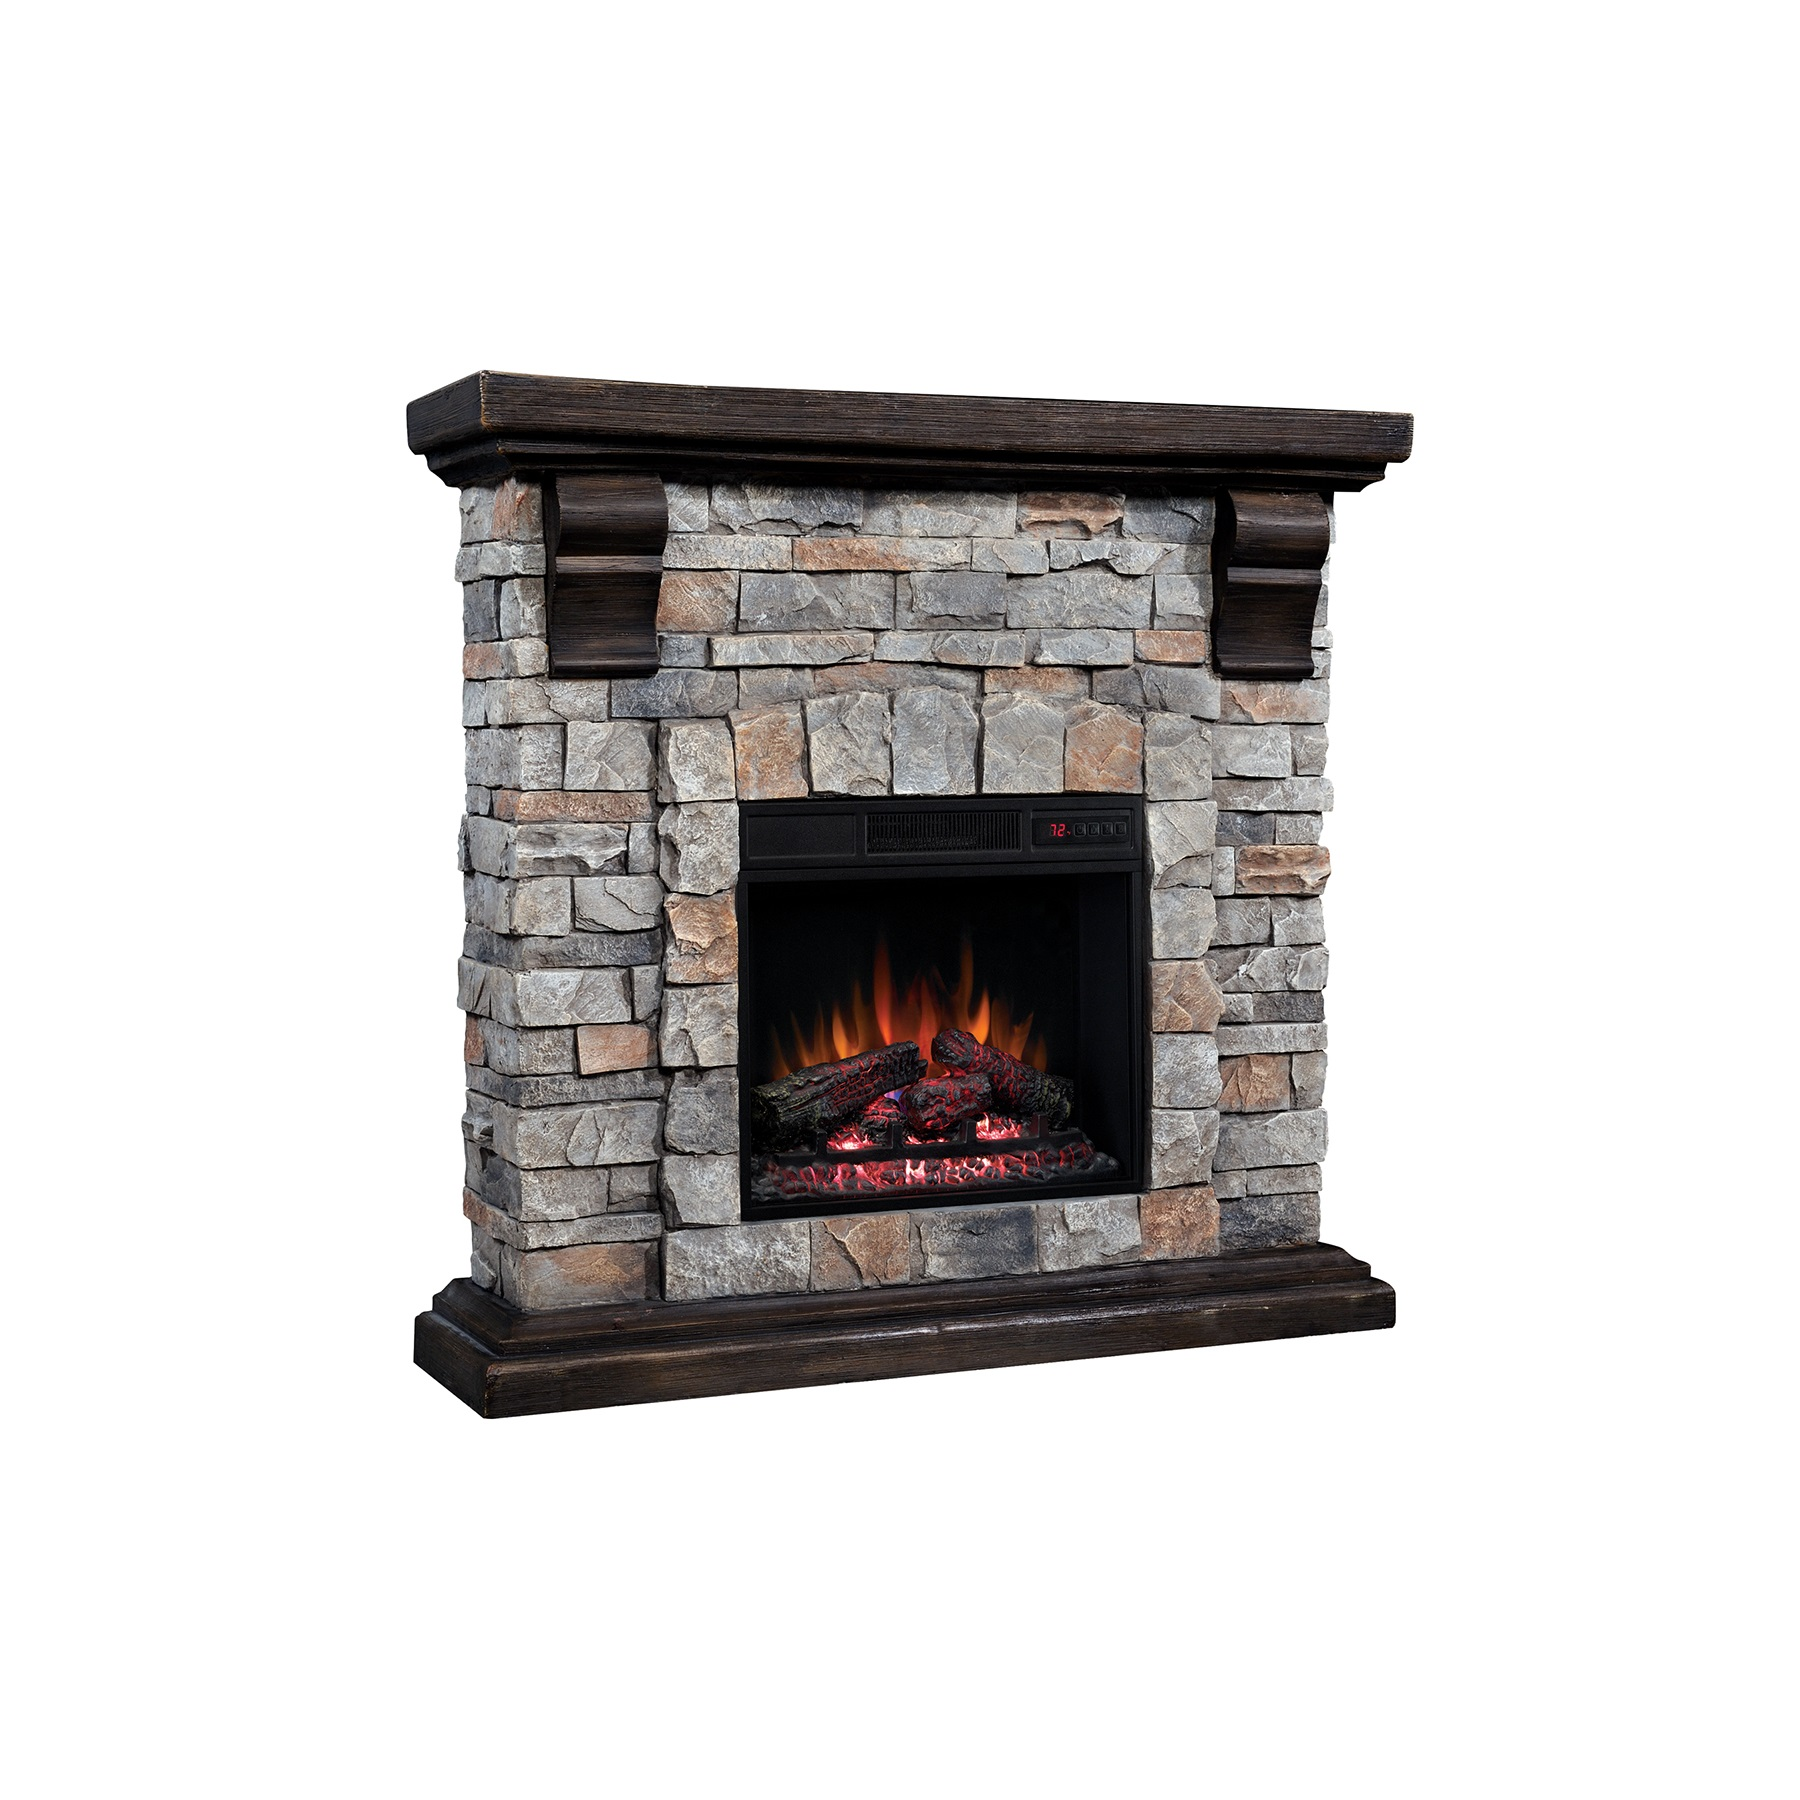 The 5 Most Realistic Electric Fireplaces In 2020 Portablefireplace Com